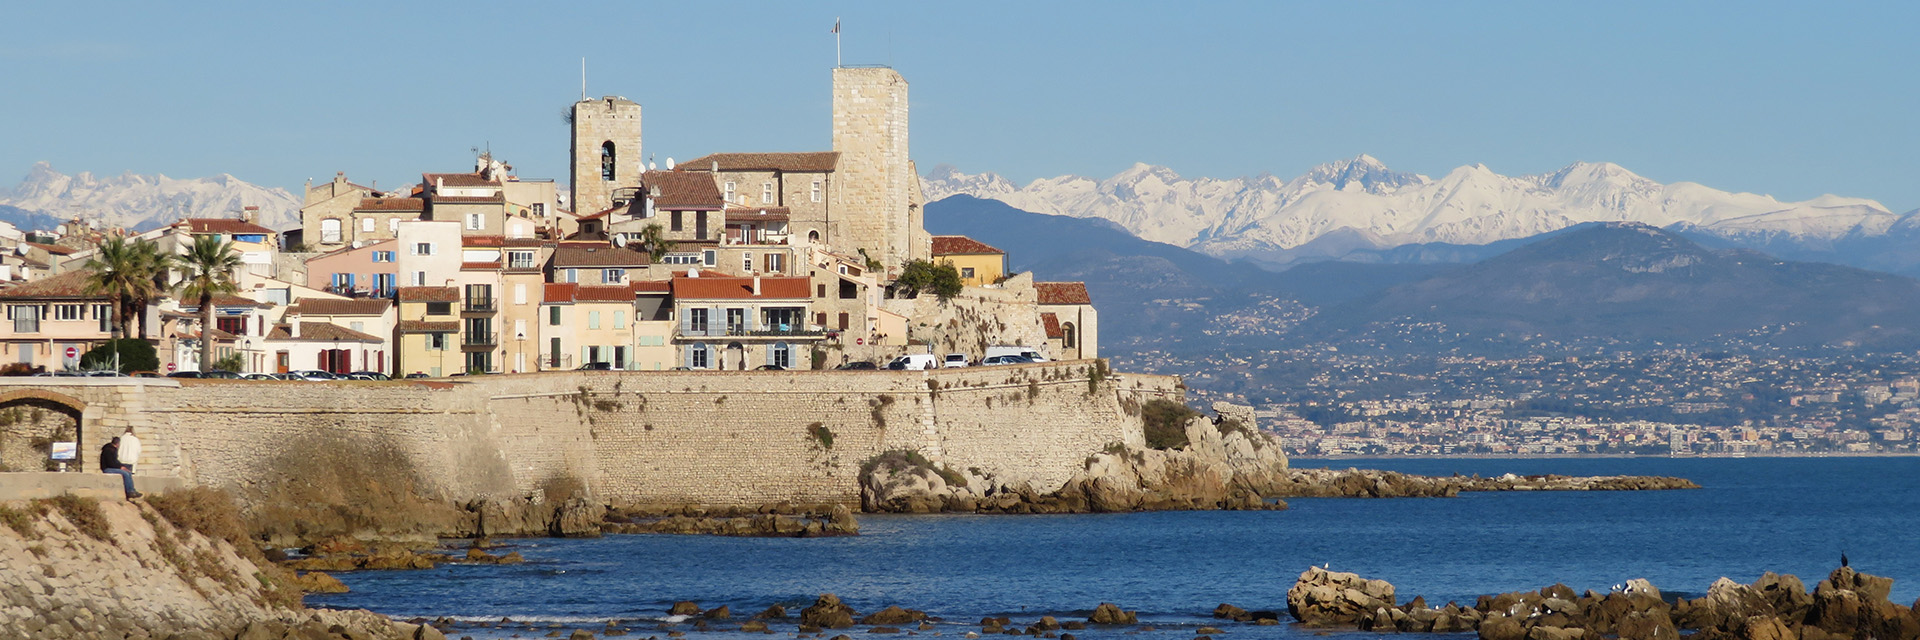 Antibes - Hotel Club Esterel